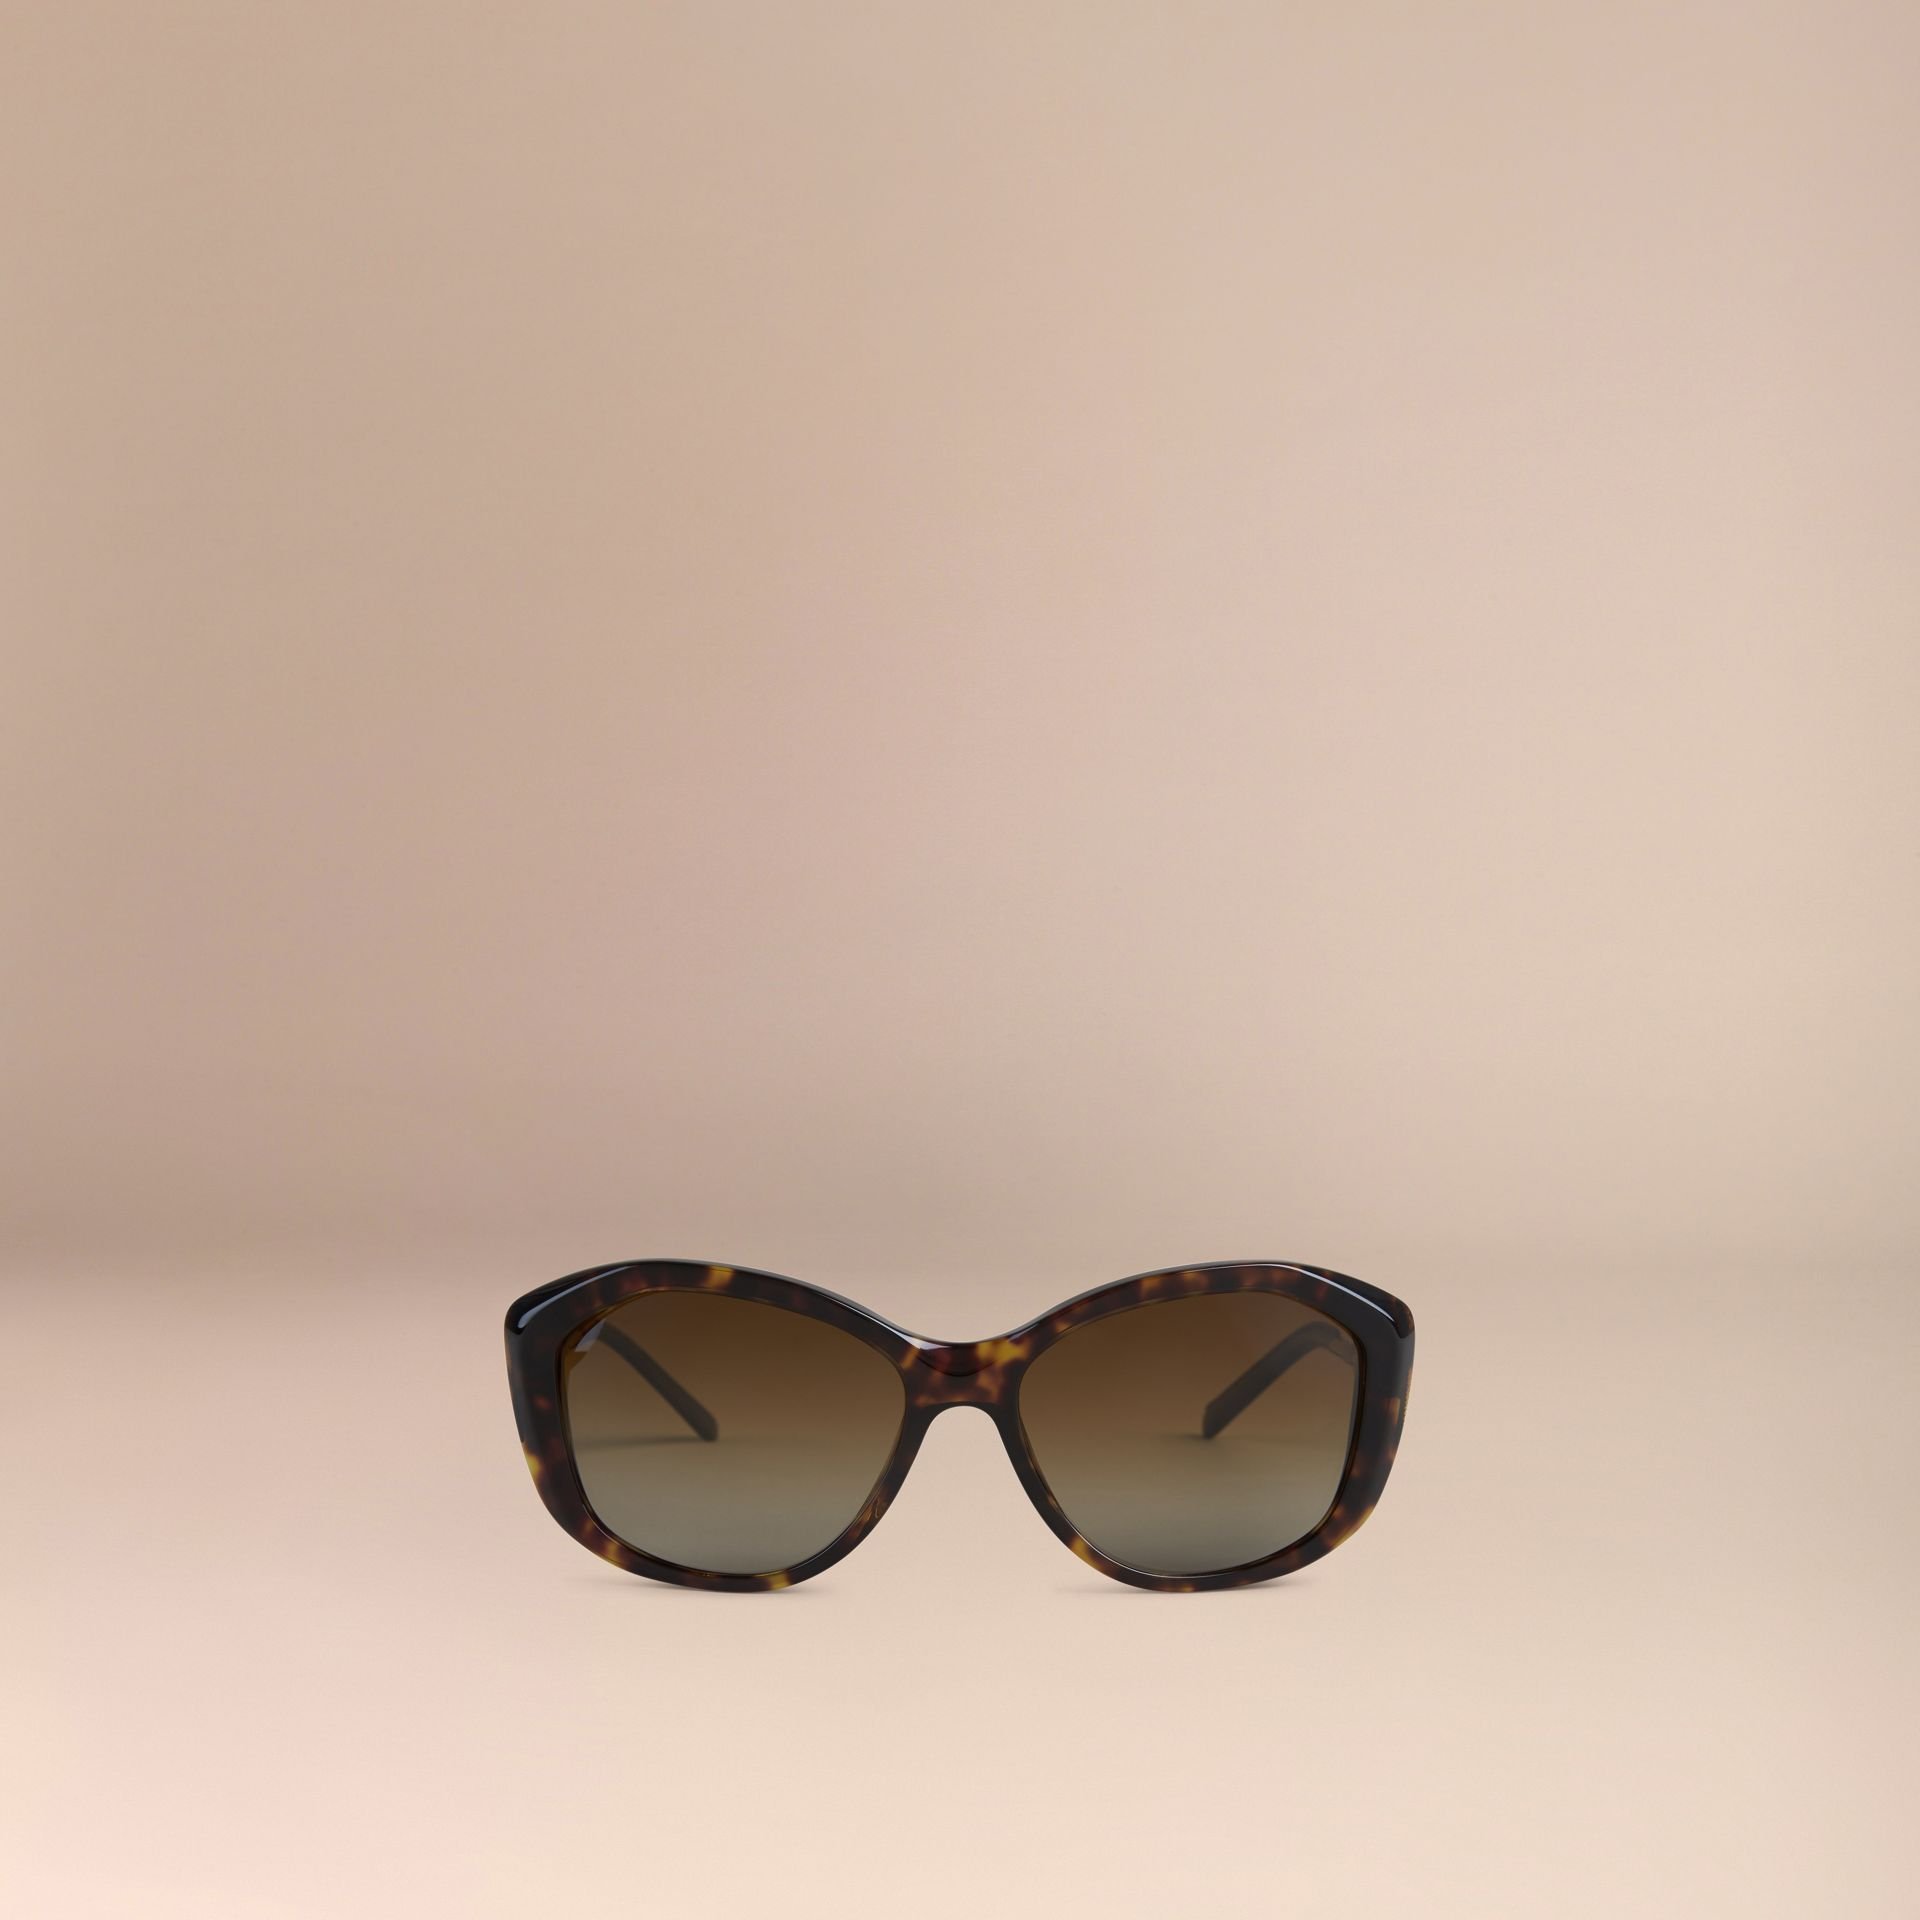 Gabardine Lace Collection Square Frame Sunglasses in Tortoise Shell - gallery image 2